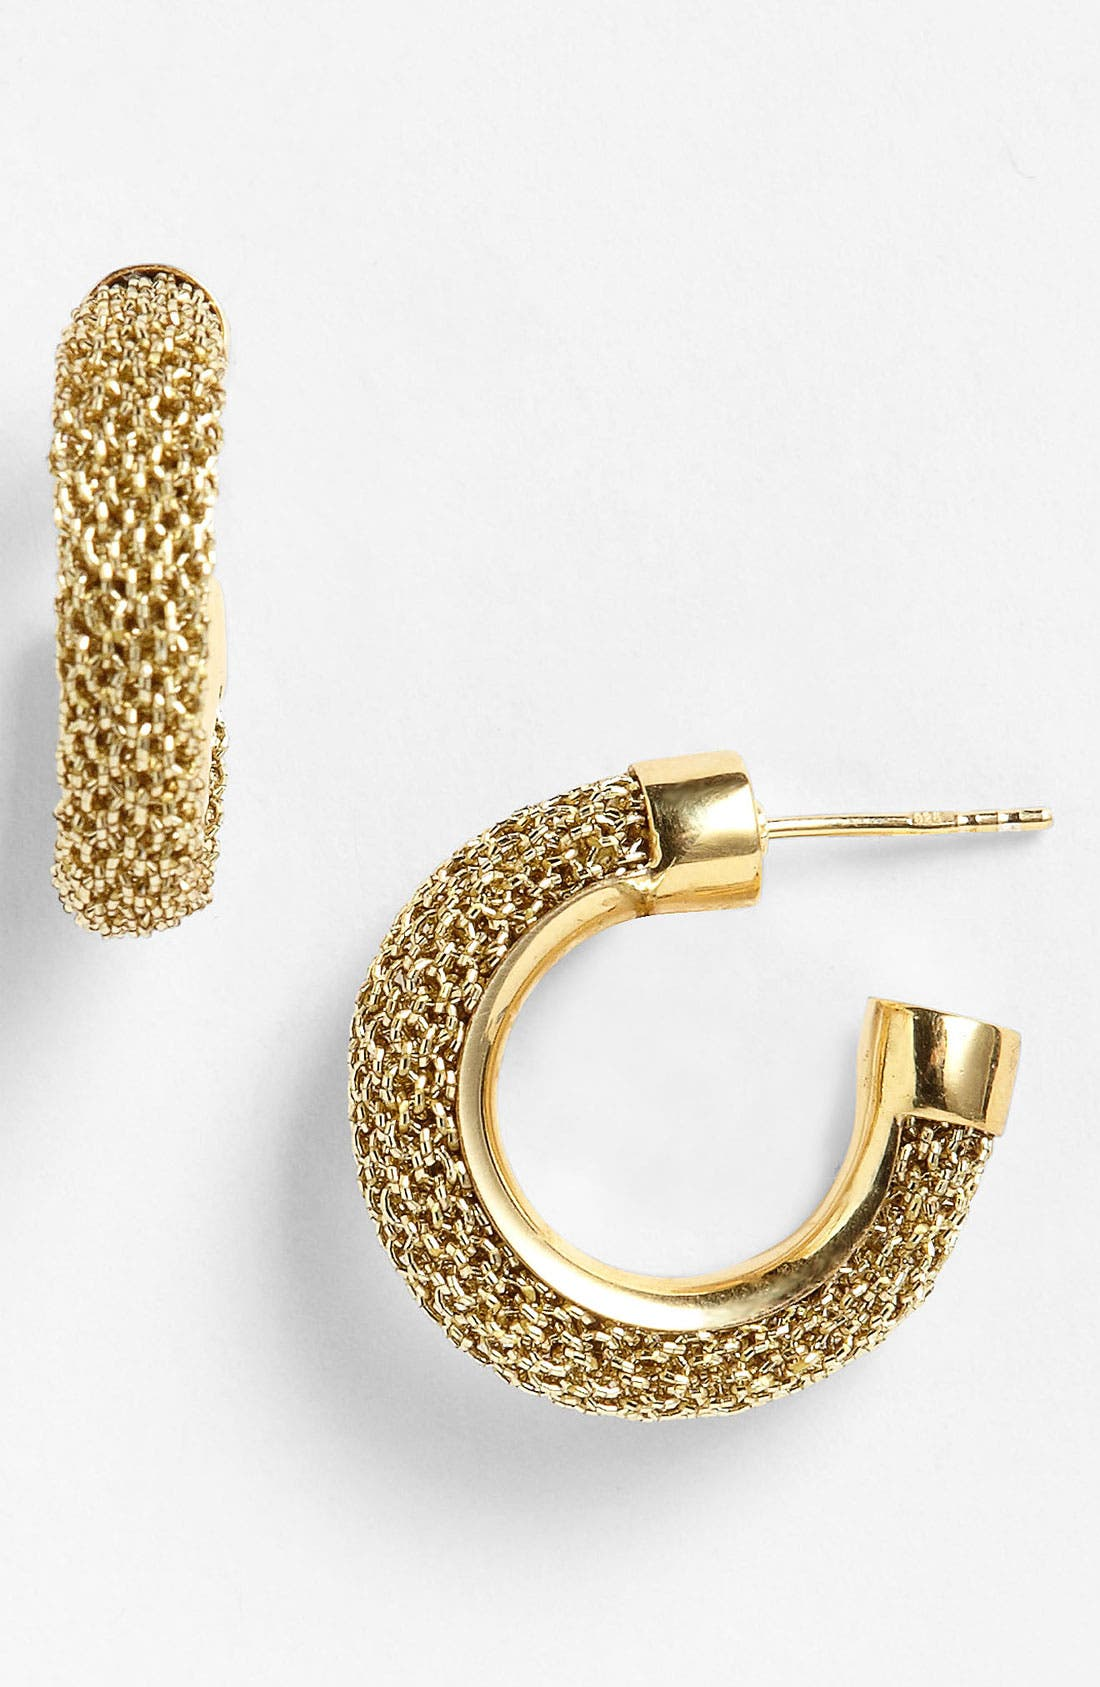 Alternate Image 1 Selected - Adami & Martucci 'Mesh' Mini Hoop Earrings